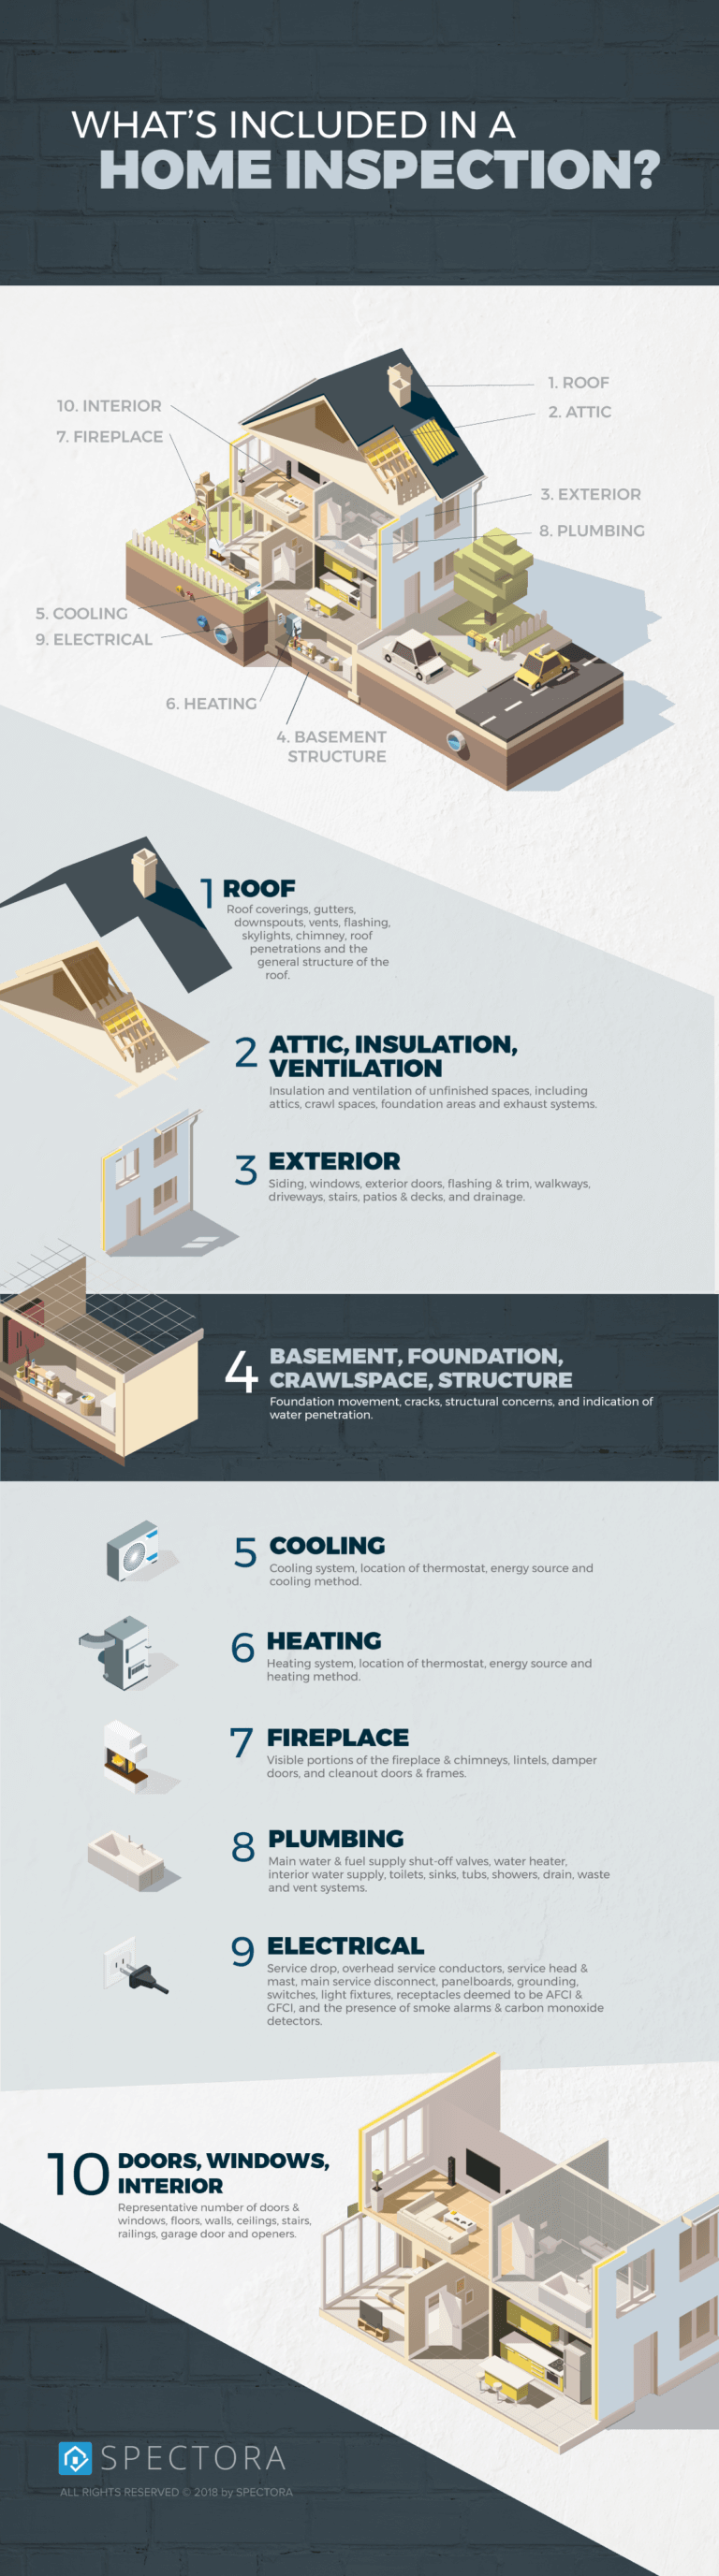 what-included-home-inspection-infographic-plaza